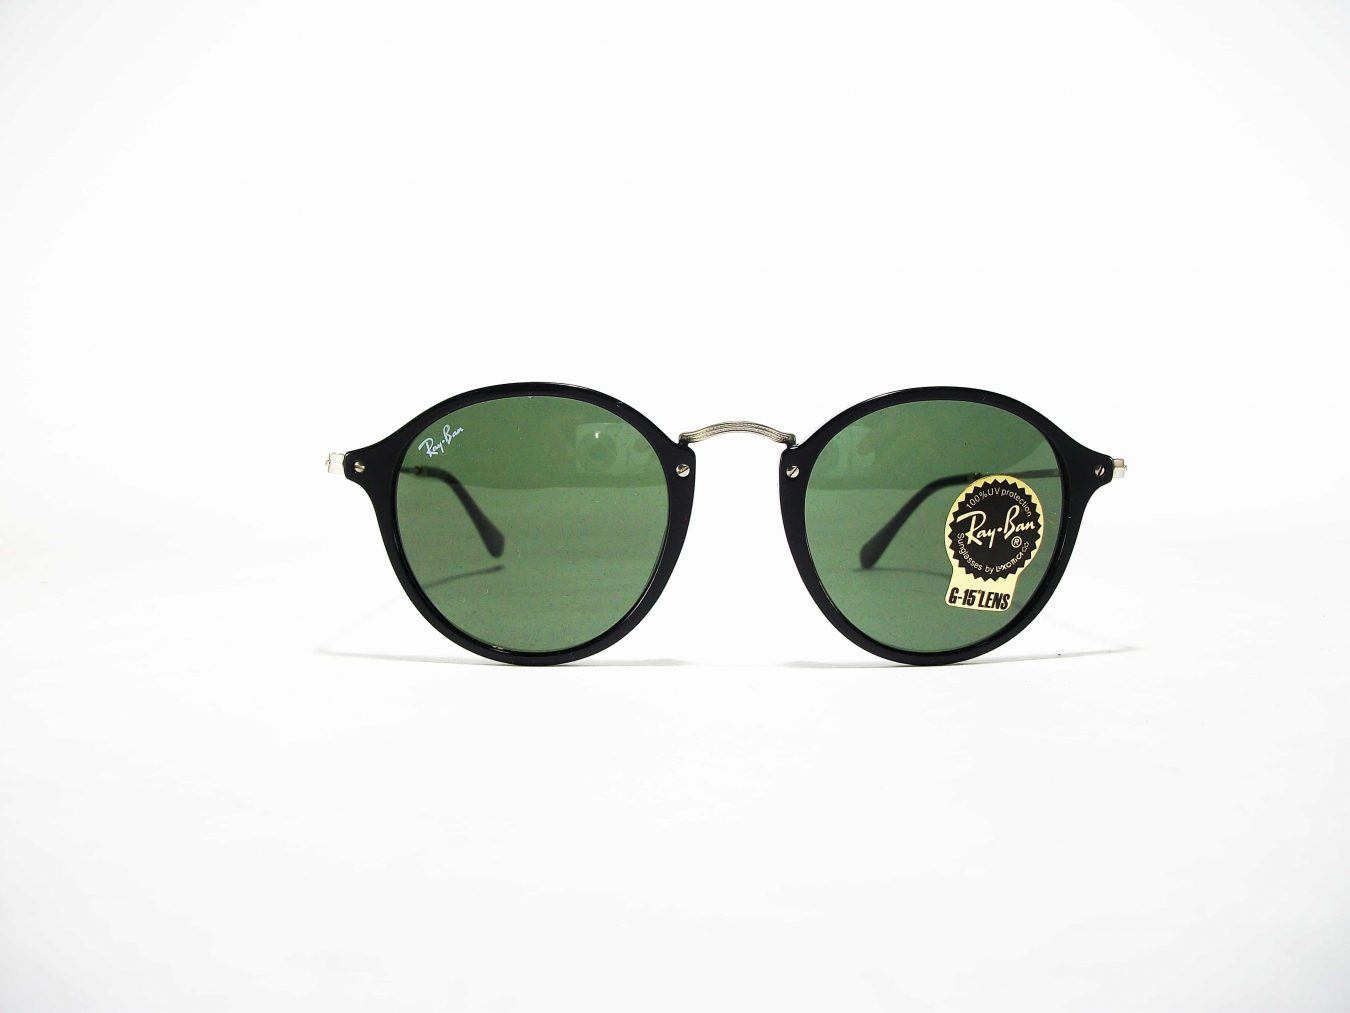 7585de209f0b4 best Anteojos De Sol Ray Ban Mujer 2018 image collection